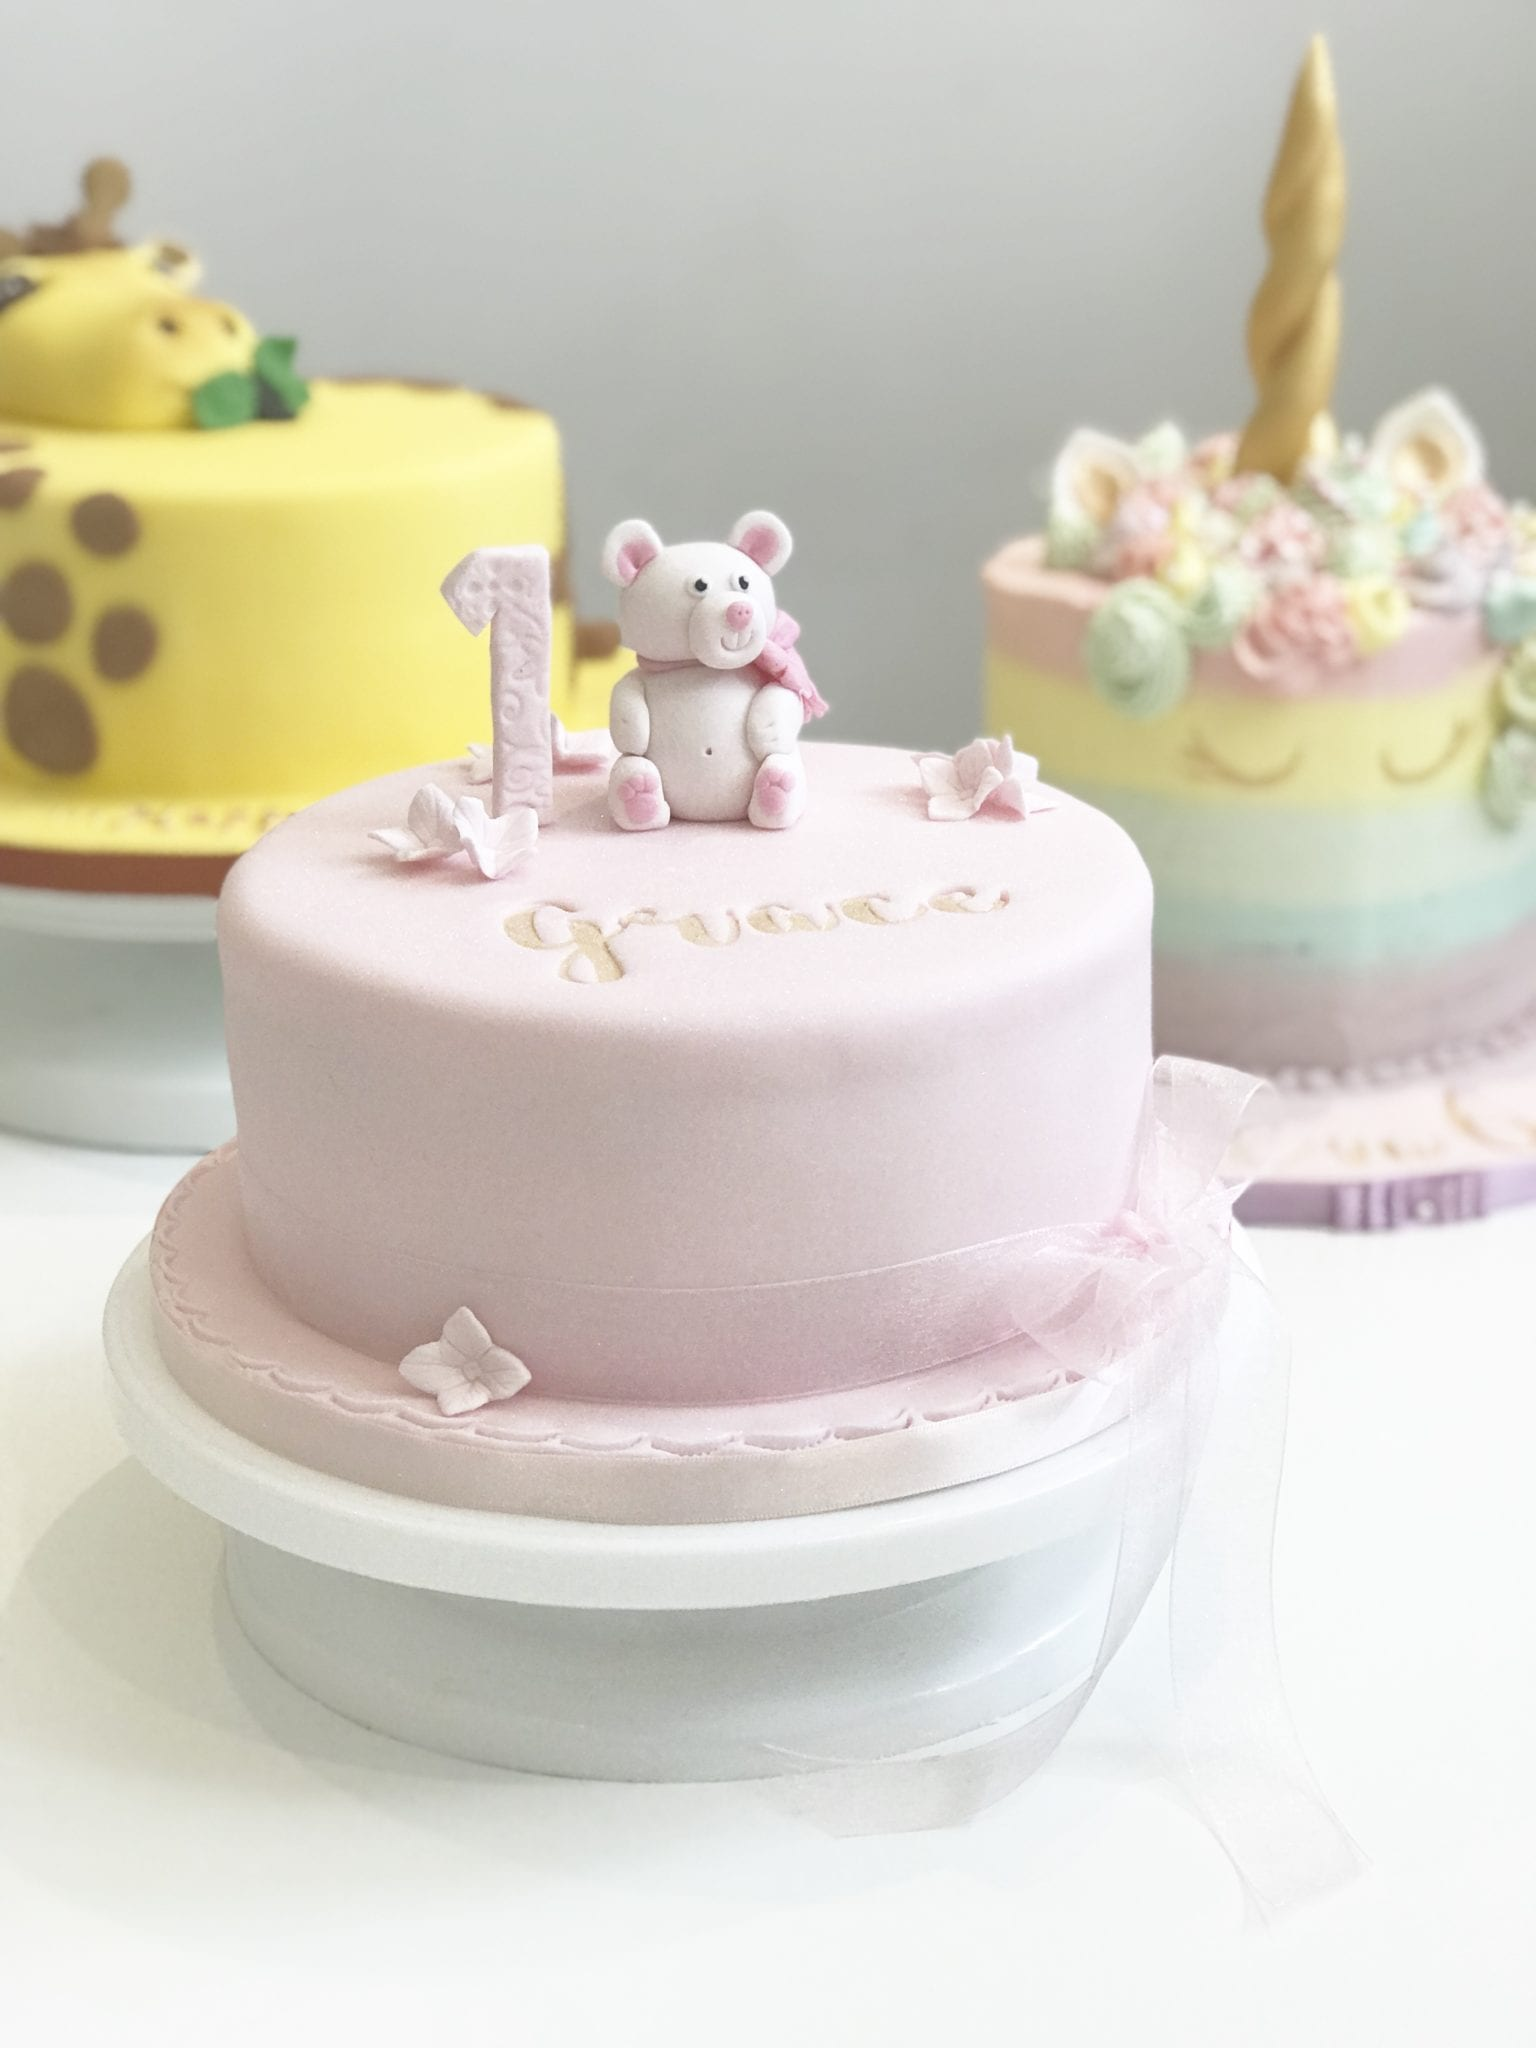 Demonstration Session – Ice a Cake Saturday 14th March 2020 10.30-12.30 – £15